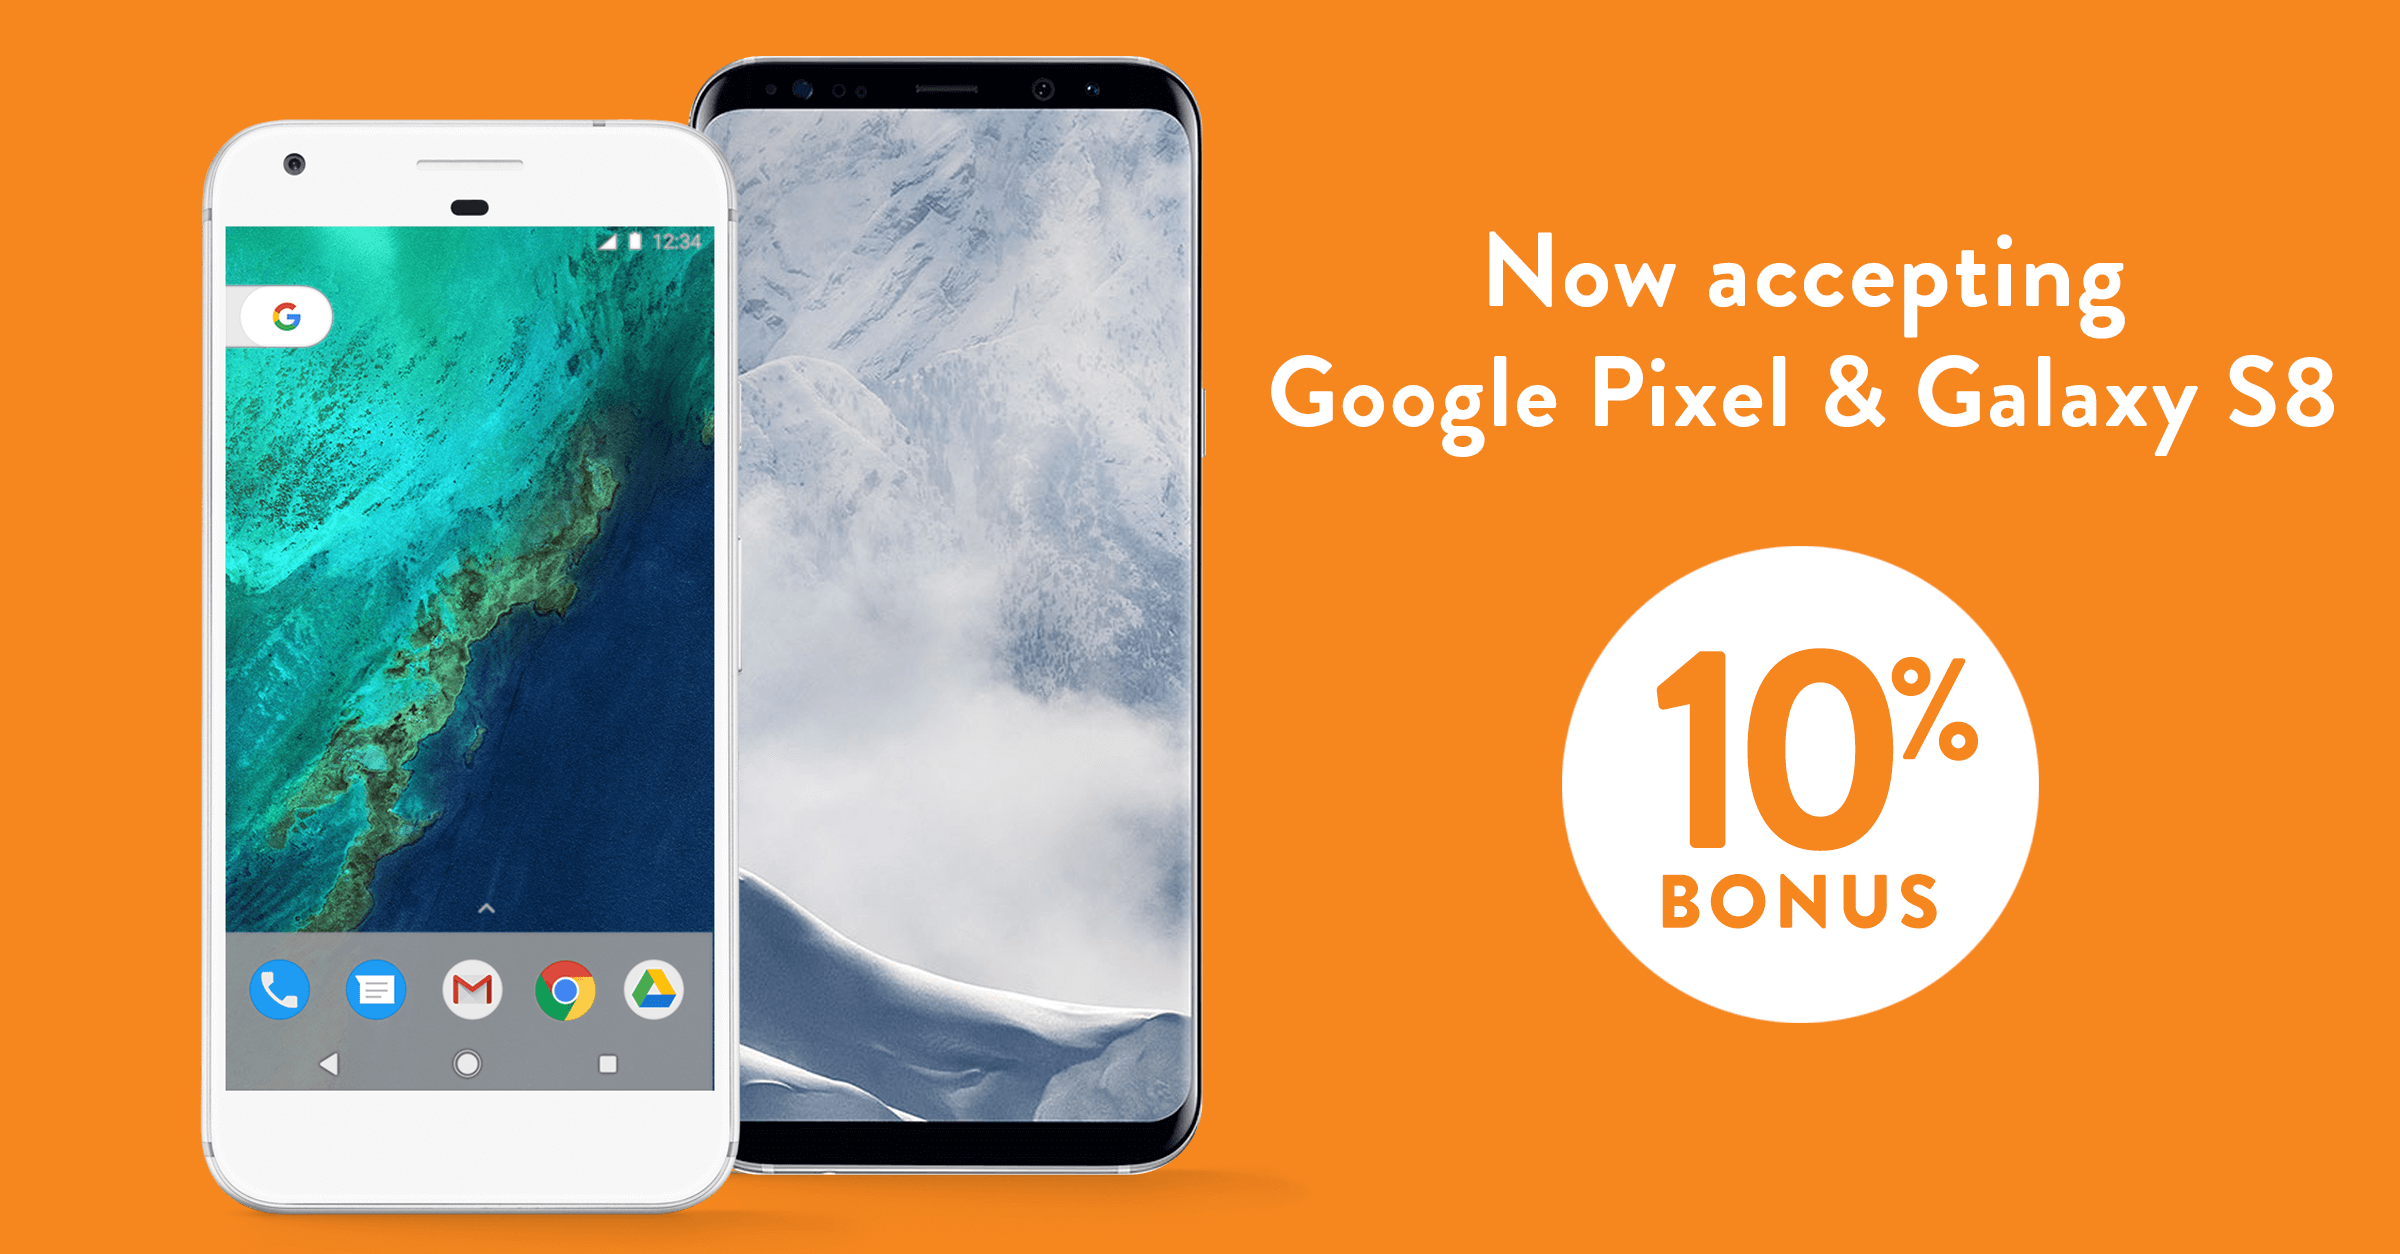 NOW ACCEPTING Google Pixel and Samsung Galaxy S8!